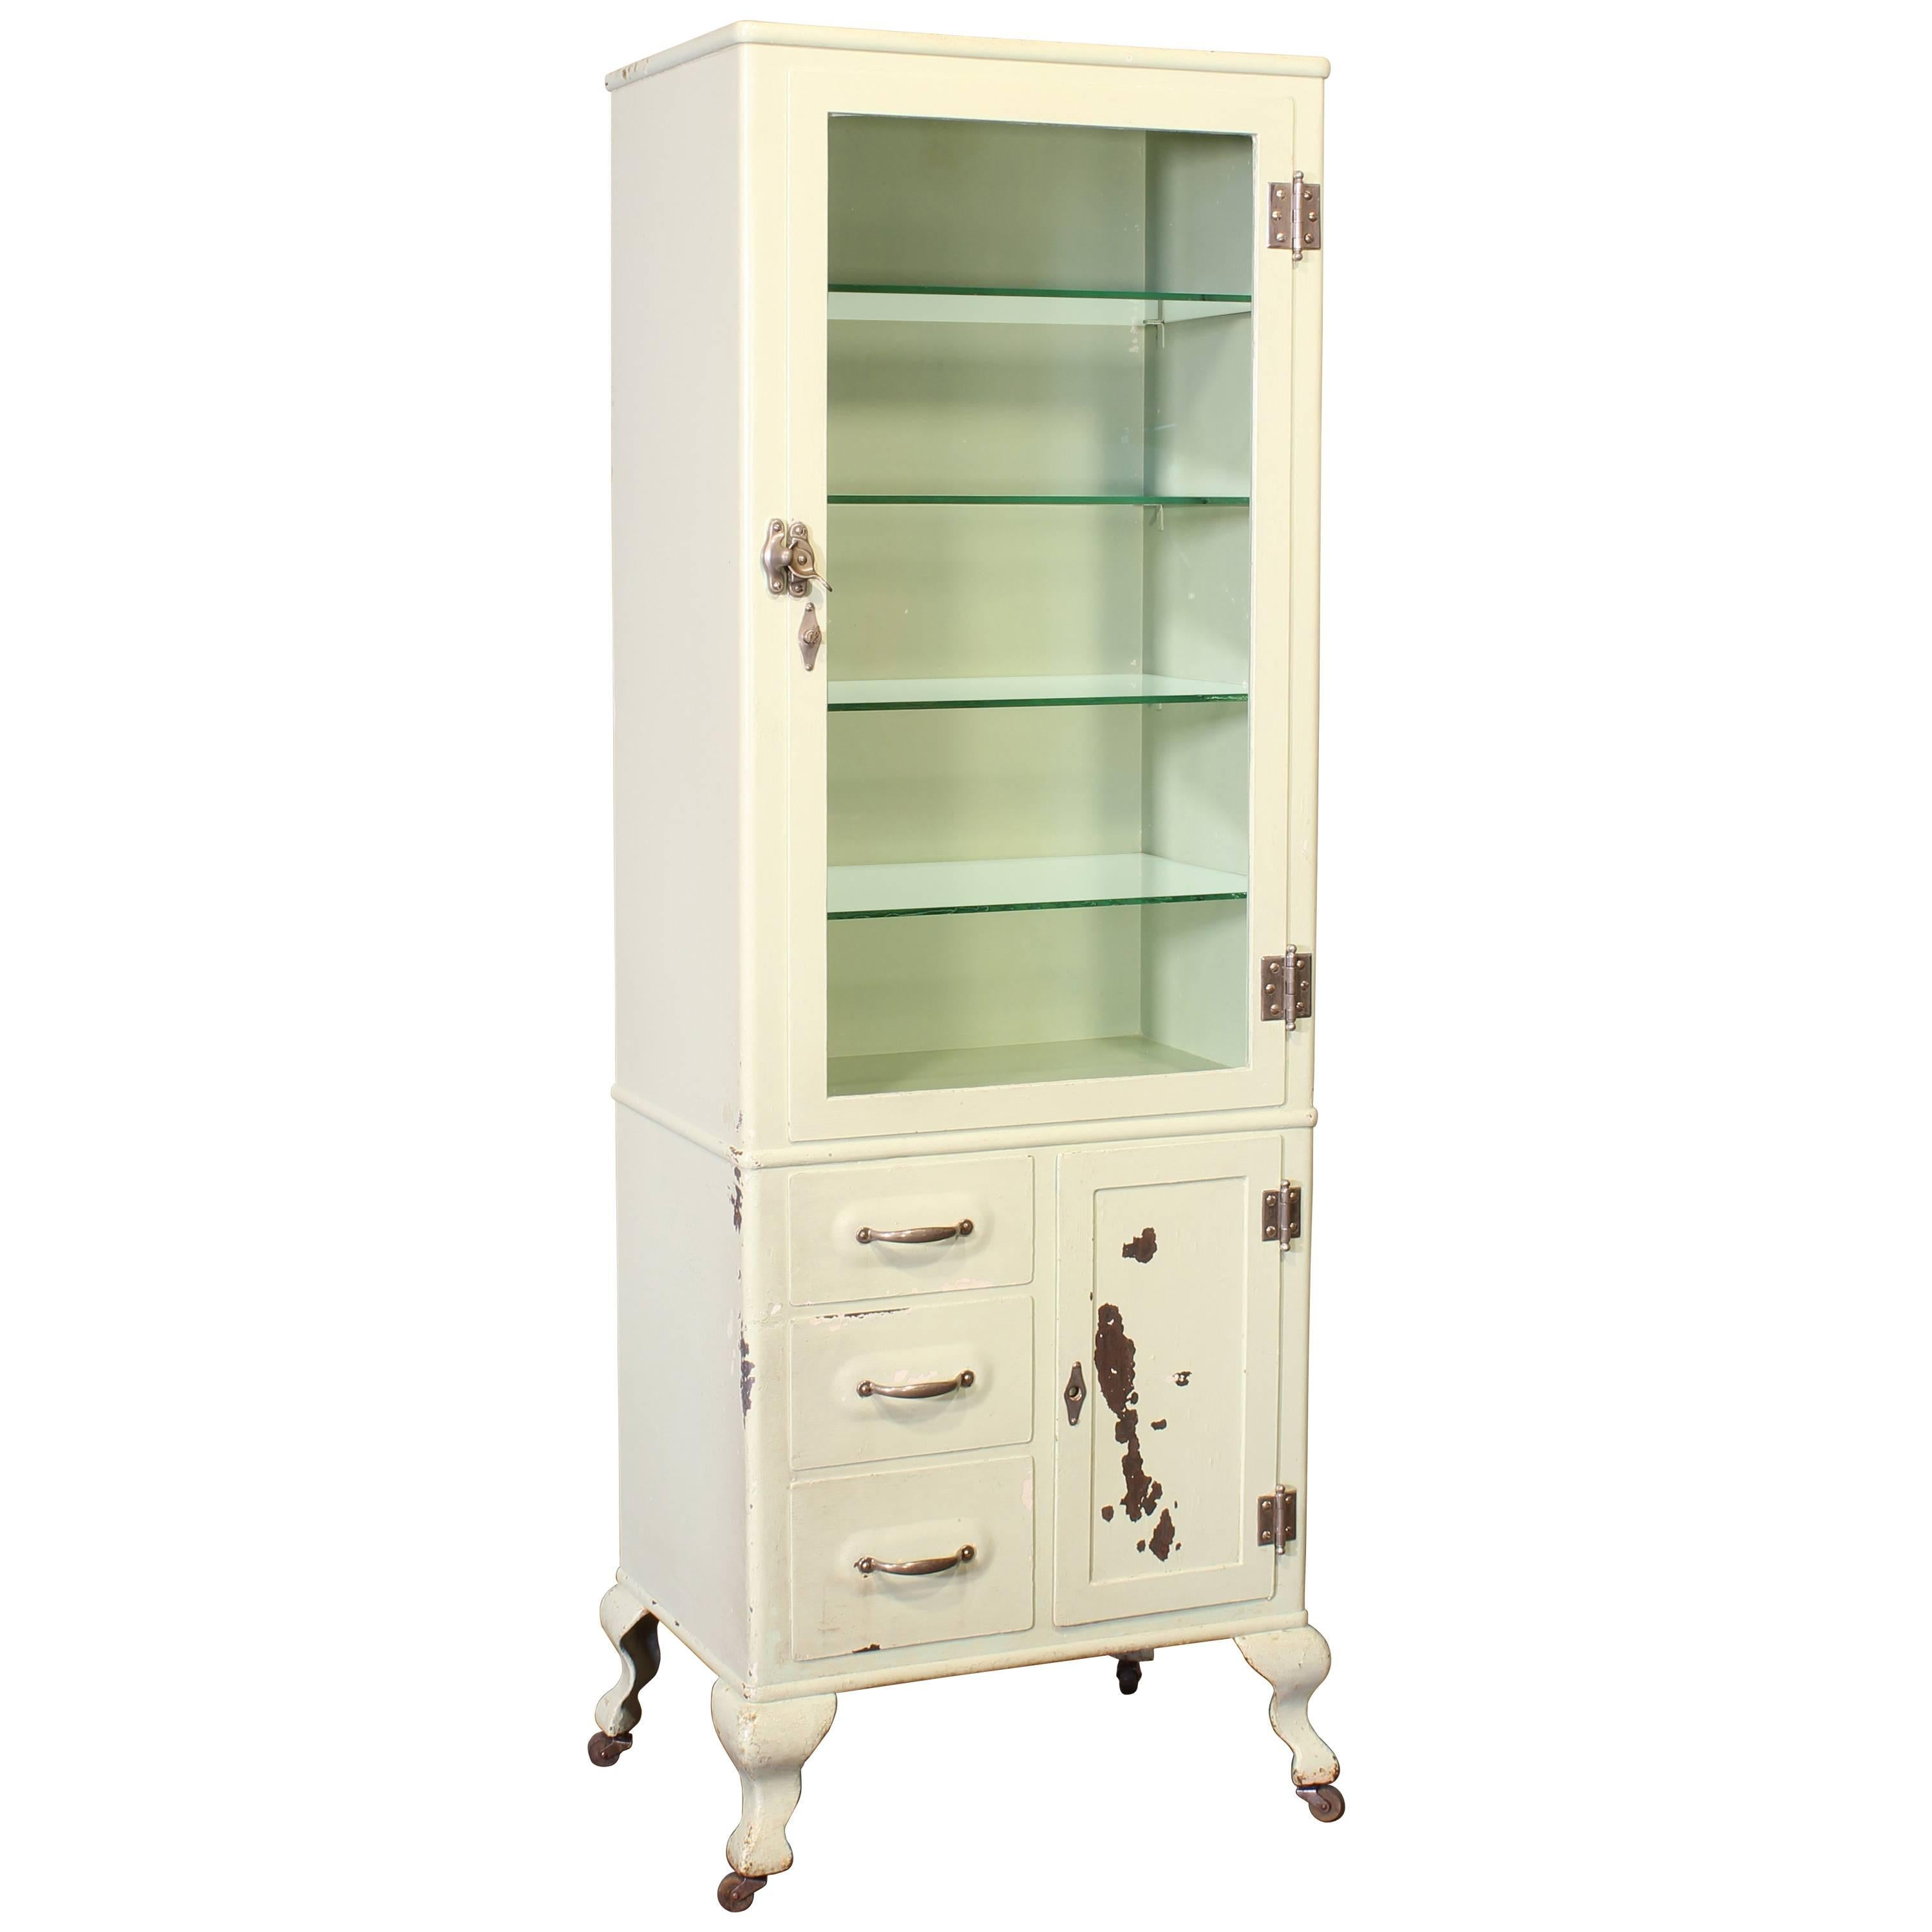 Merveilleux Antique Medical Cabinet